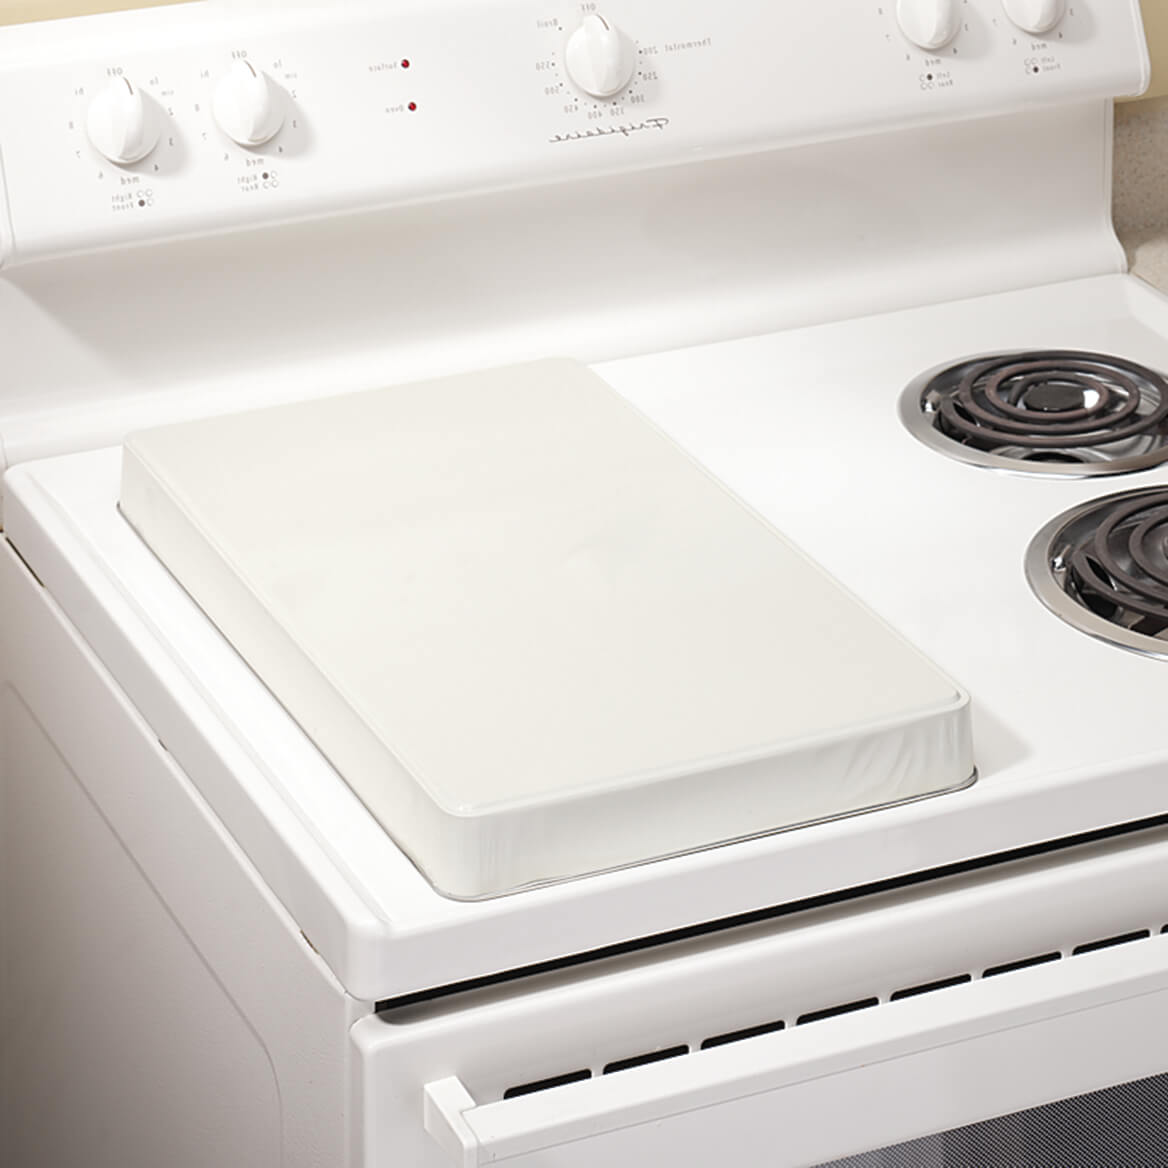 gas stove burner covers. extra deep burner covers - set of 2 gas stove i